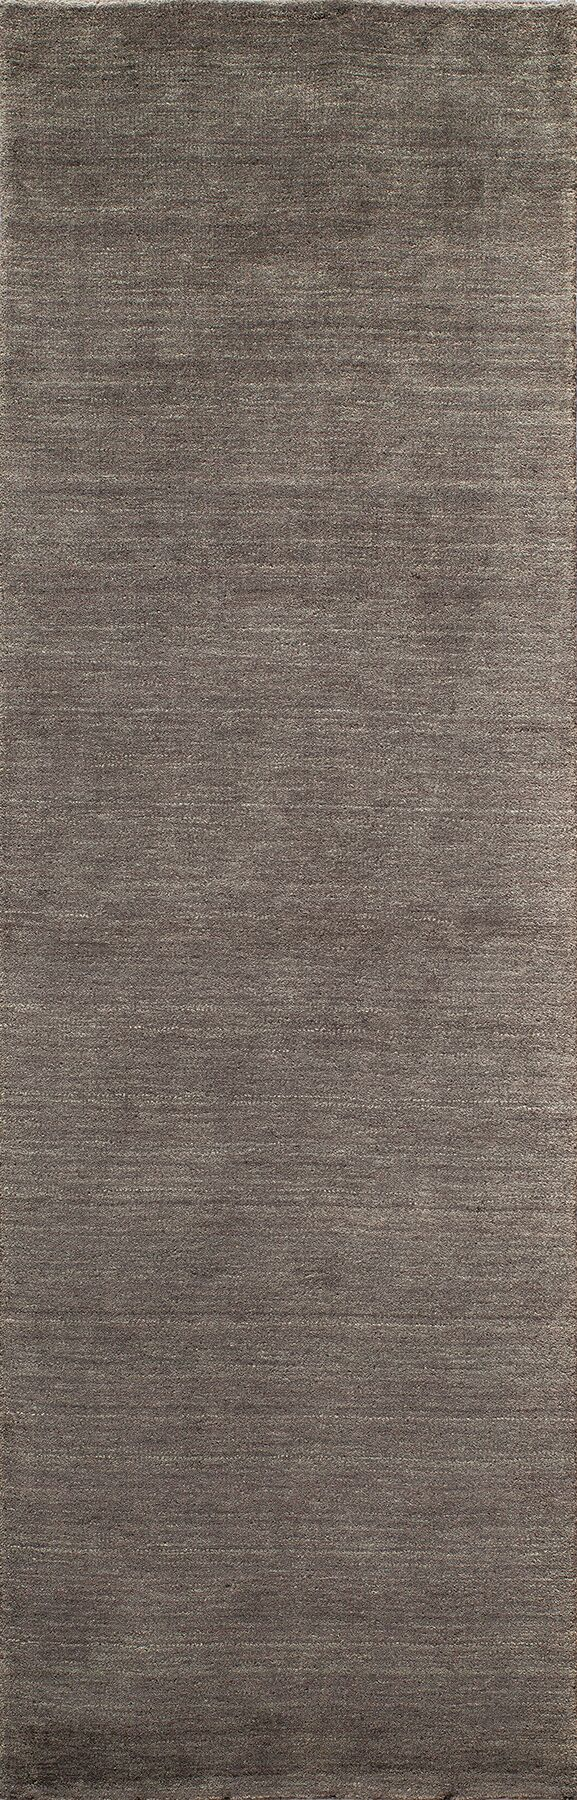 Christensen Hand-Woven Charcoal Area Rug Rug Size: Rectangle 3'6